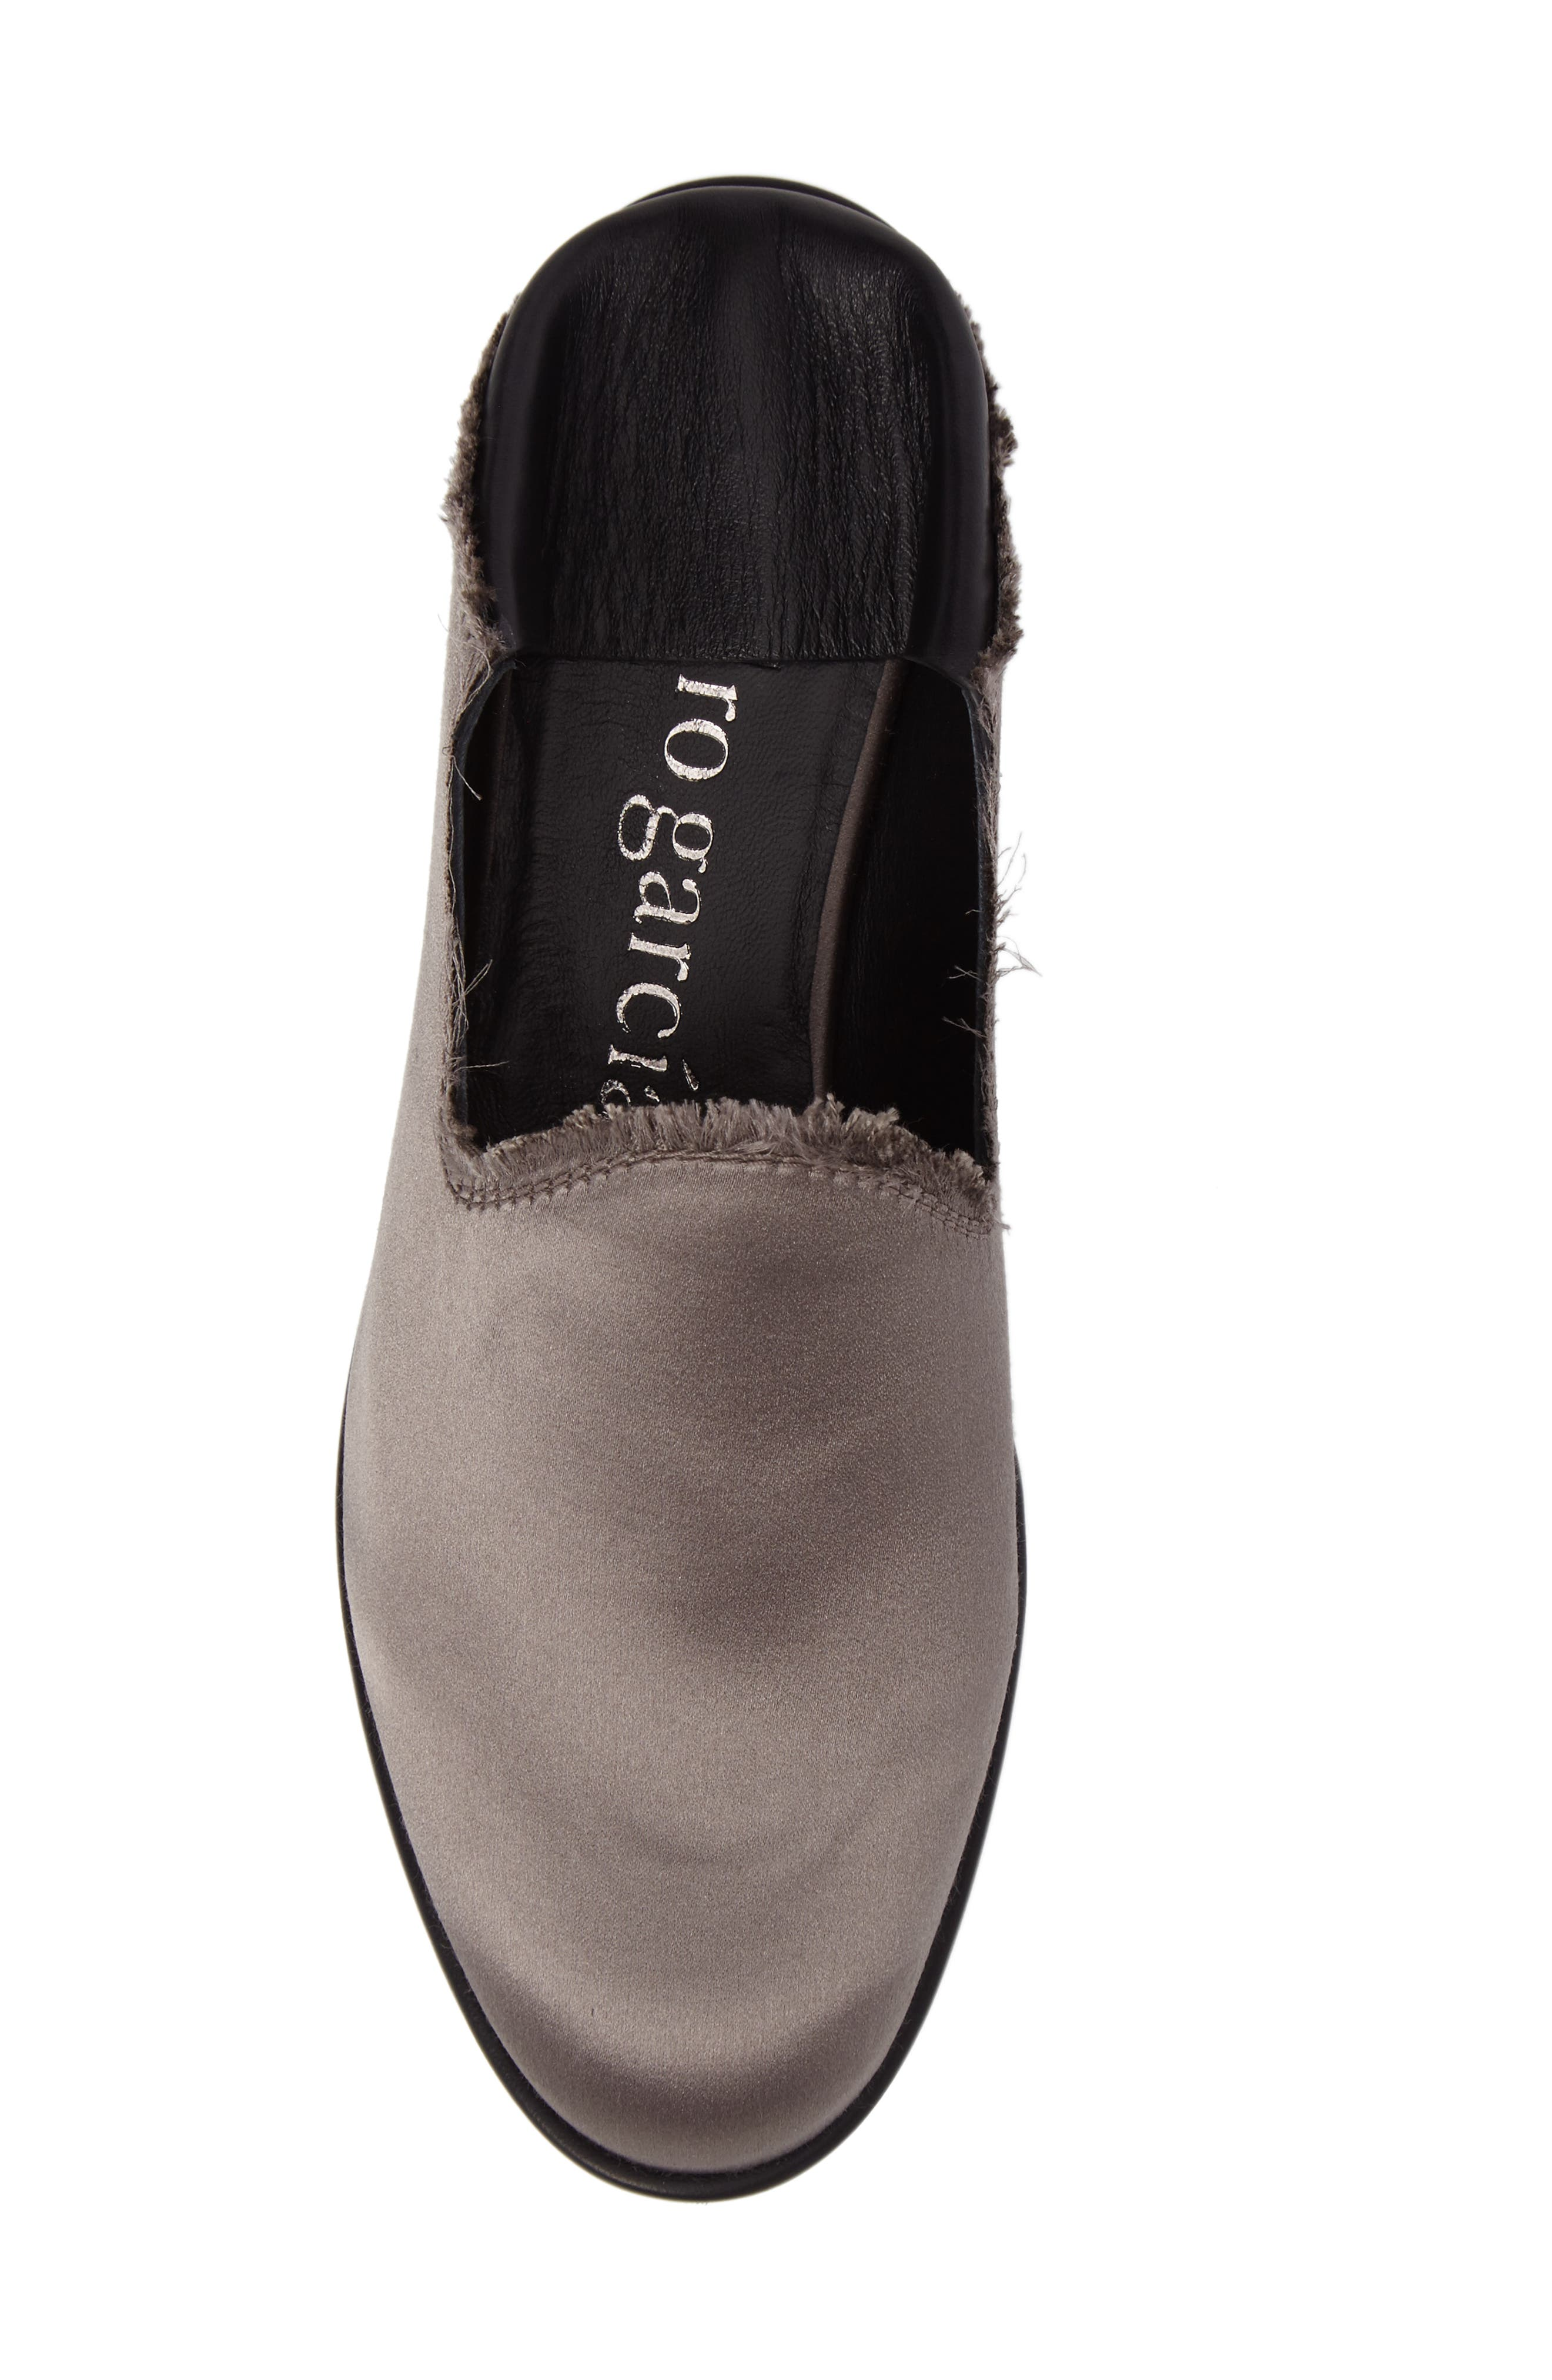 Yamir Convertible Loafer,                             Alternate thumbnail 6, color,                             Truffle Satin